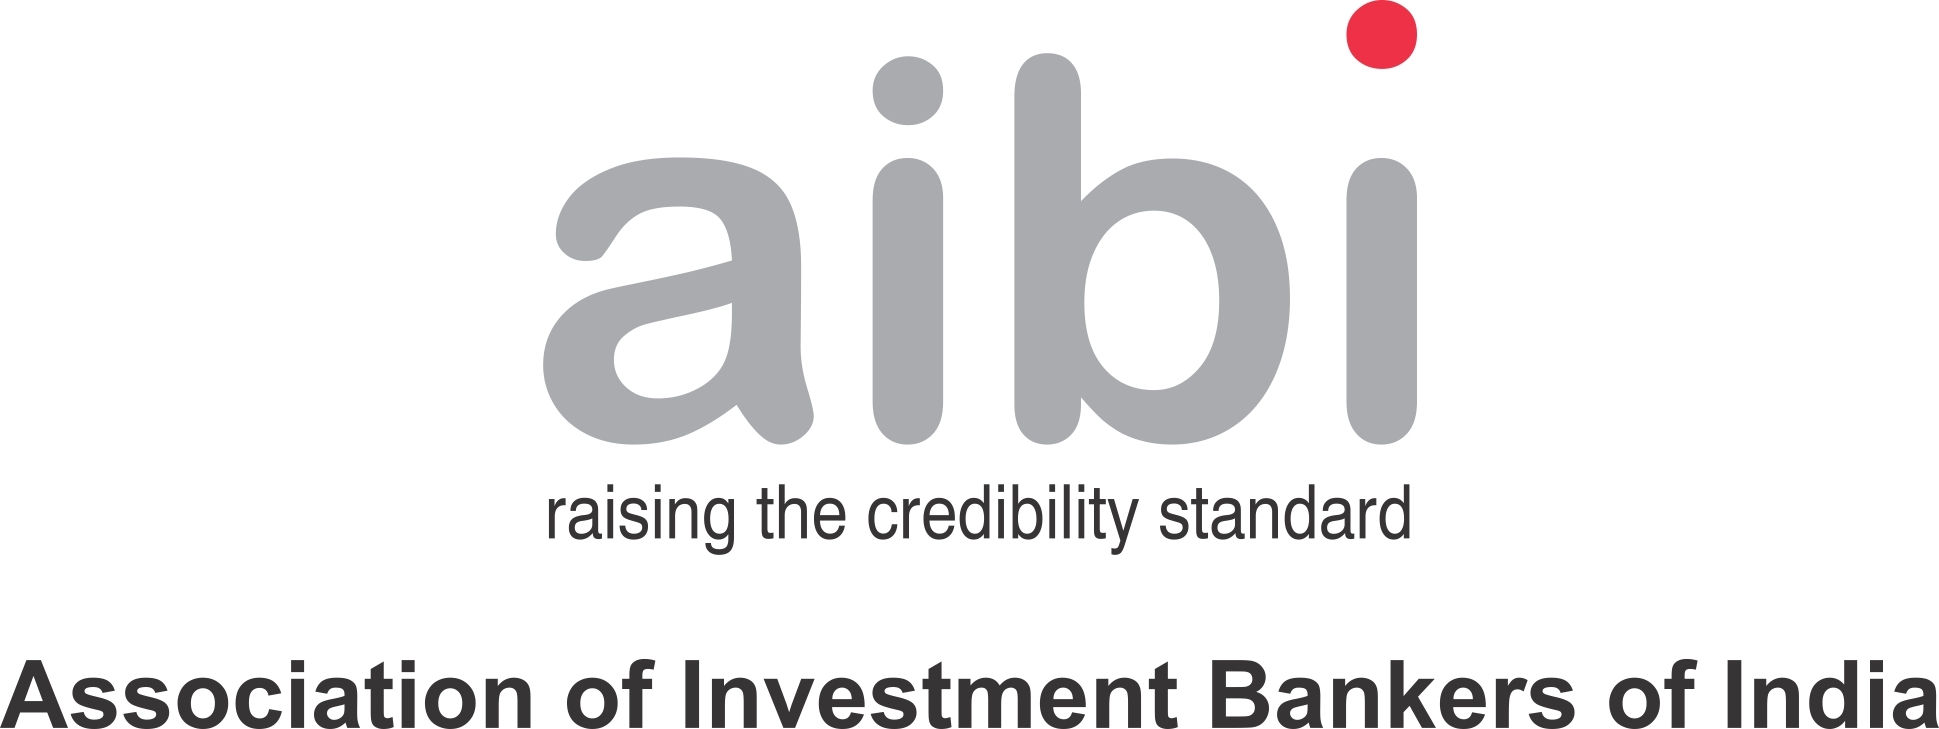 Association of Investment Bankers of India